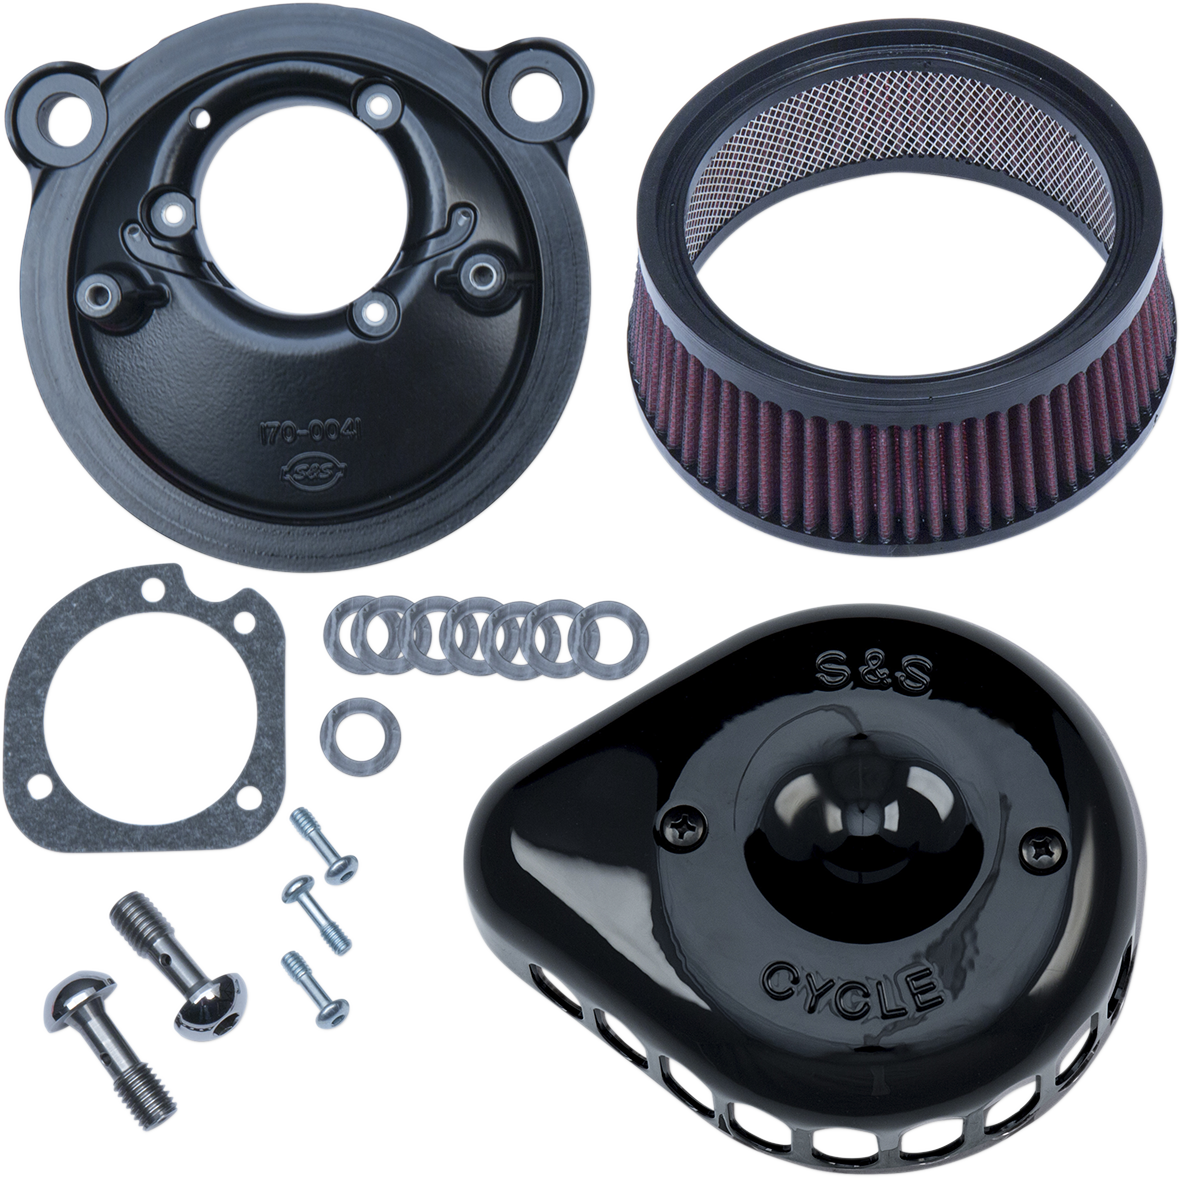 S&S Cycles Black Mini Teardrop Stealth Air Cleaner Kit for 17-18 Harley XL